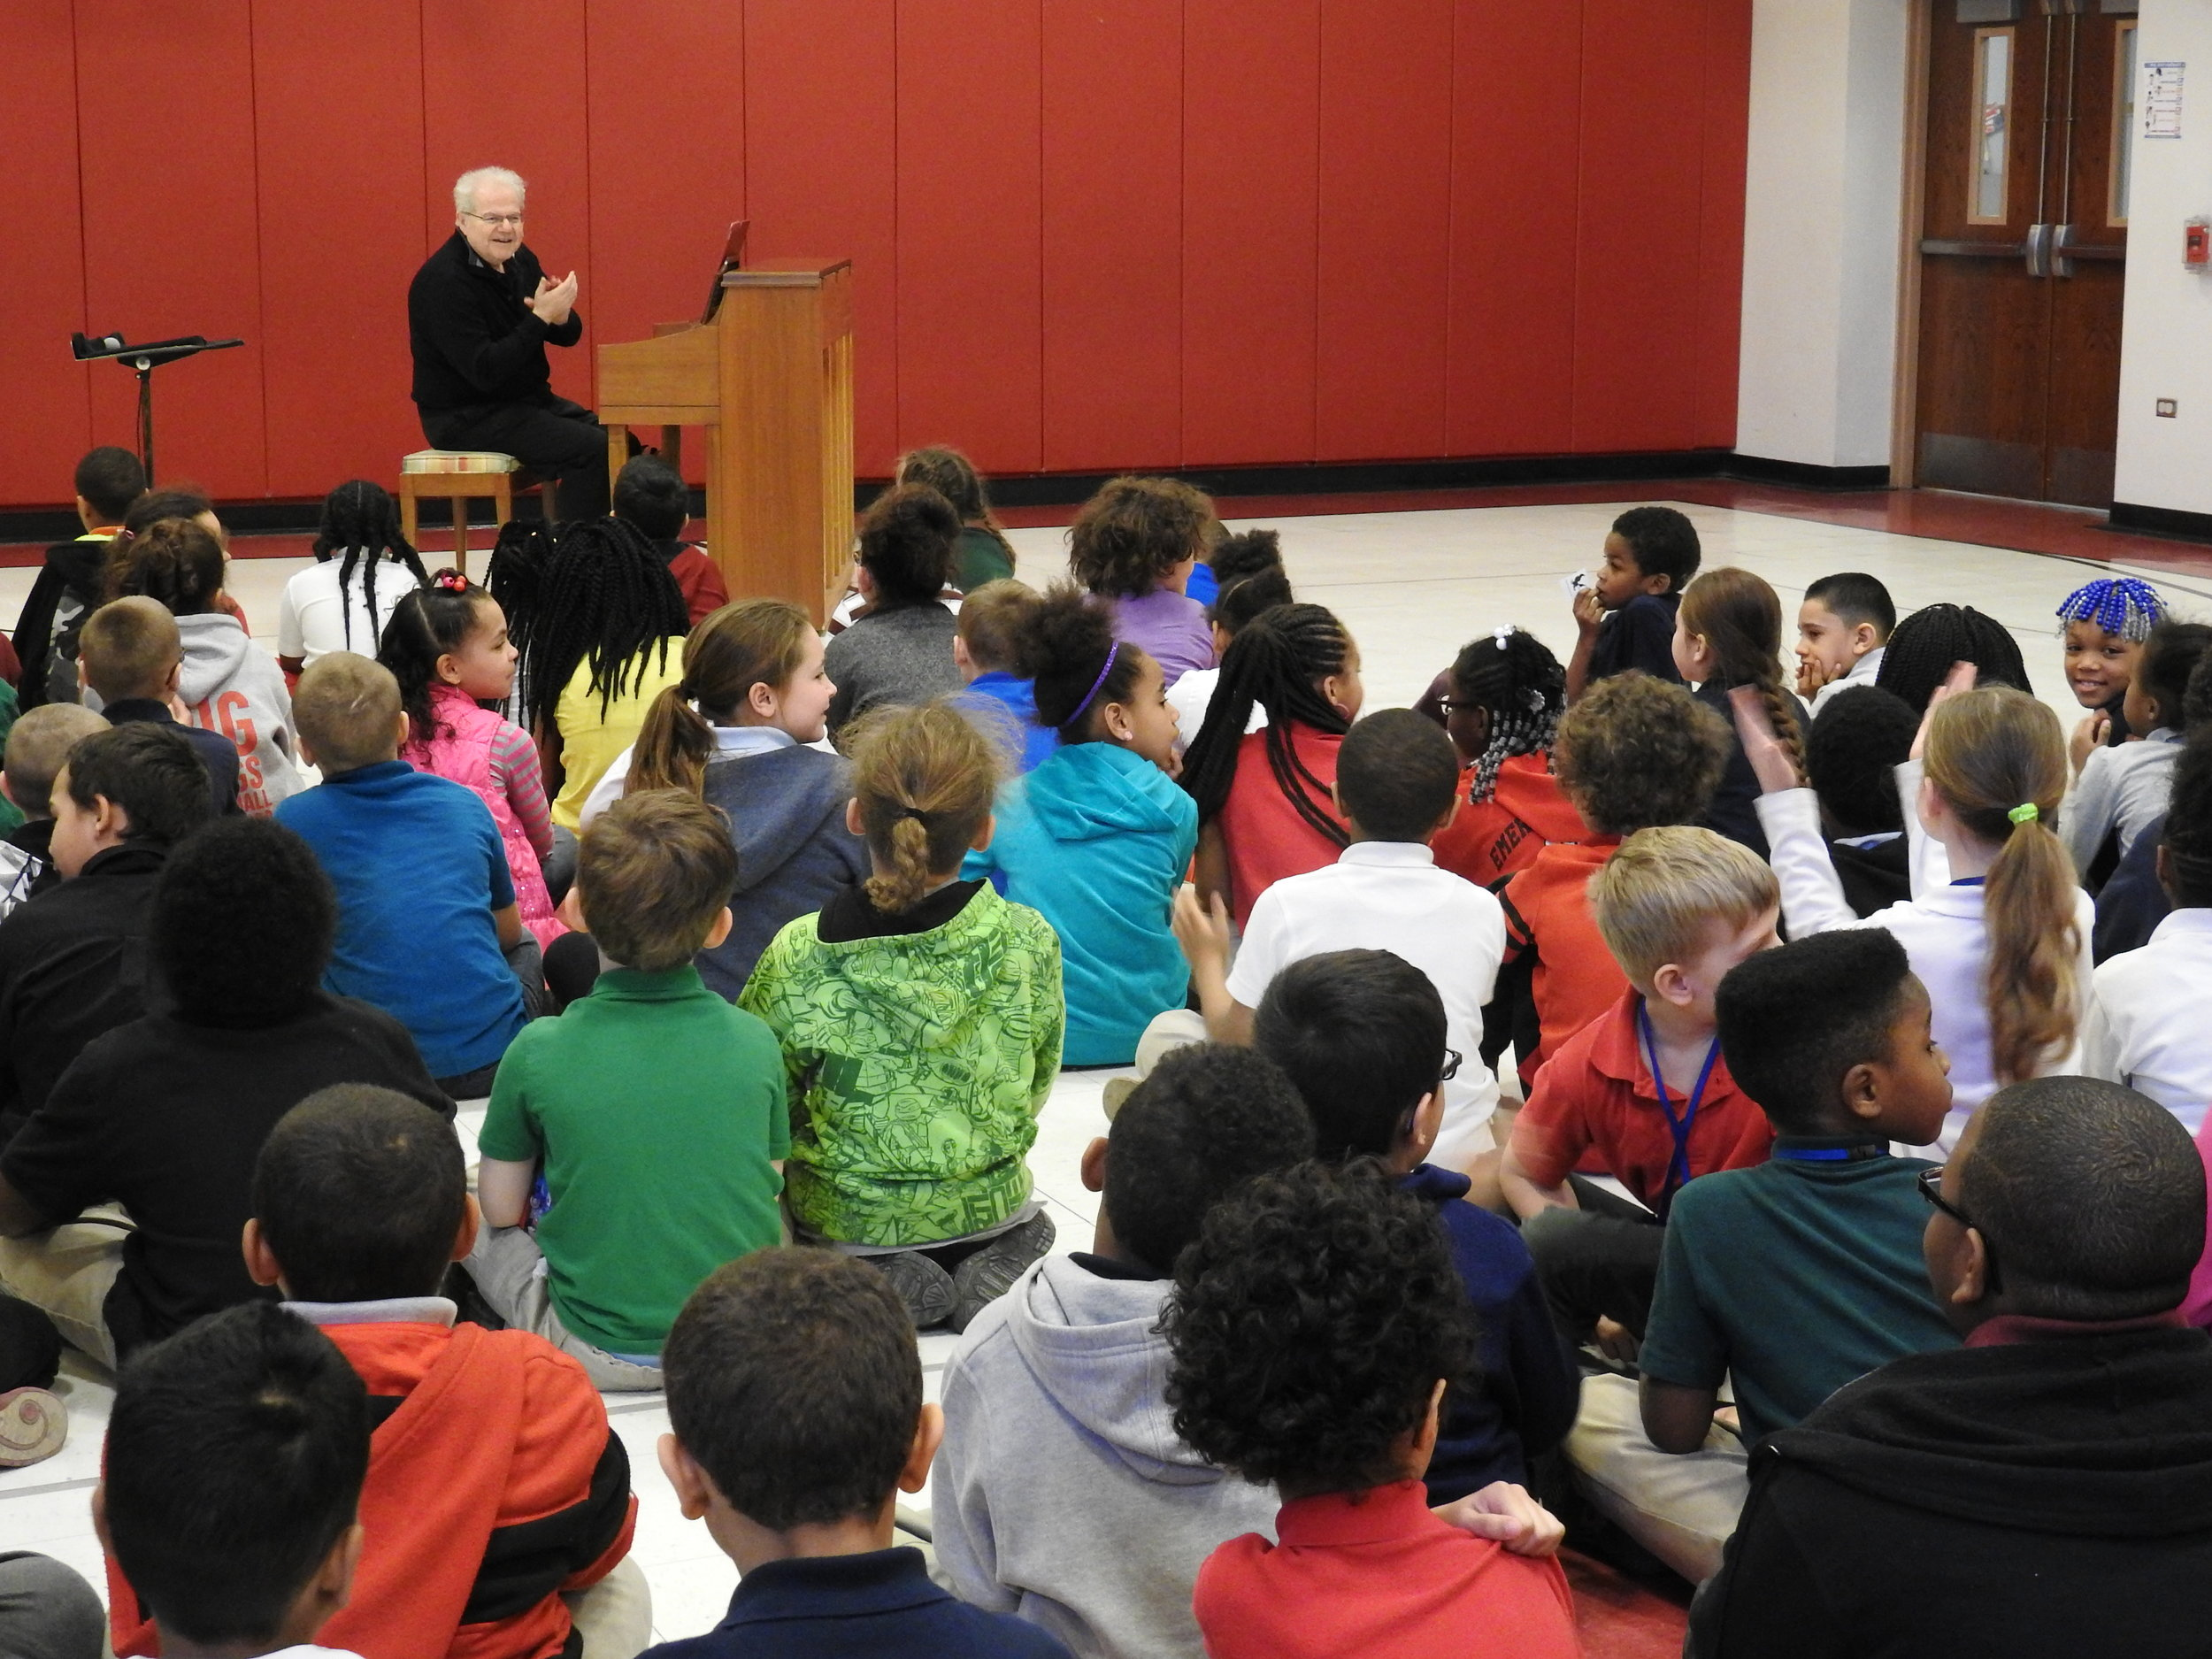 Pianist Emanuel Ax performing at the Emerson Gridley Elementary School in Erie, Pennsylvania, as a guest artist brought in by Erie Philharmonic.